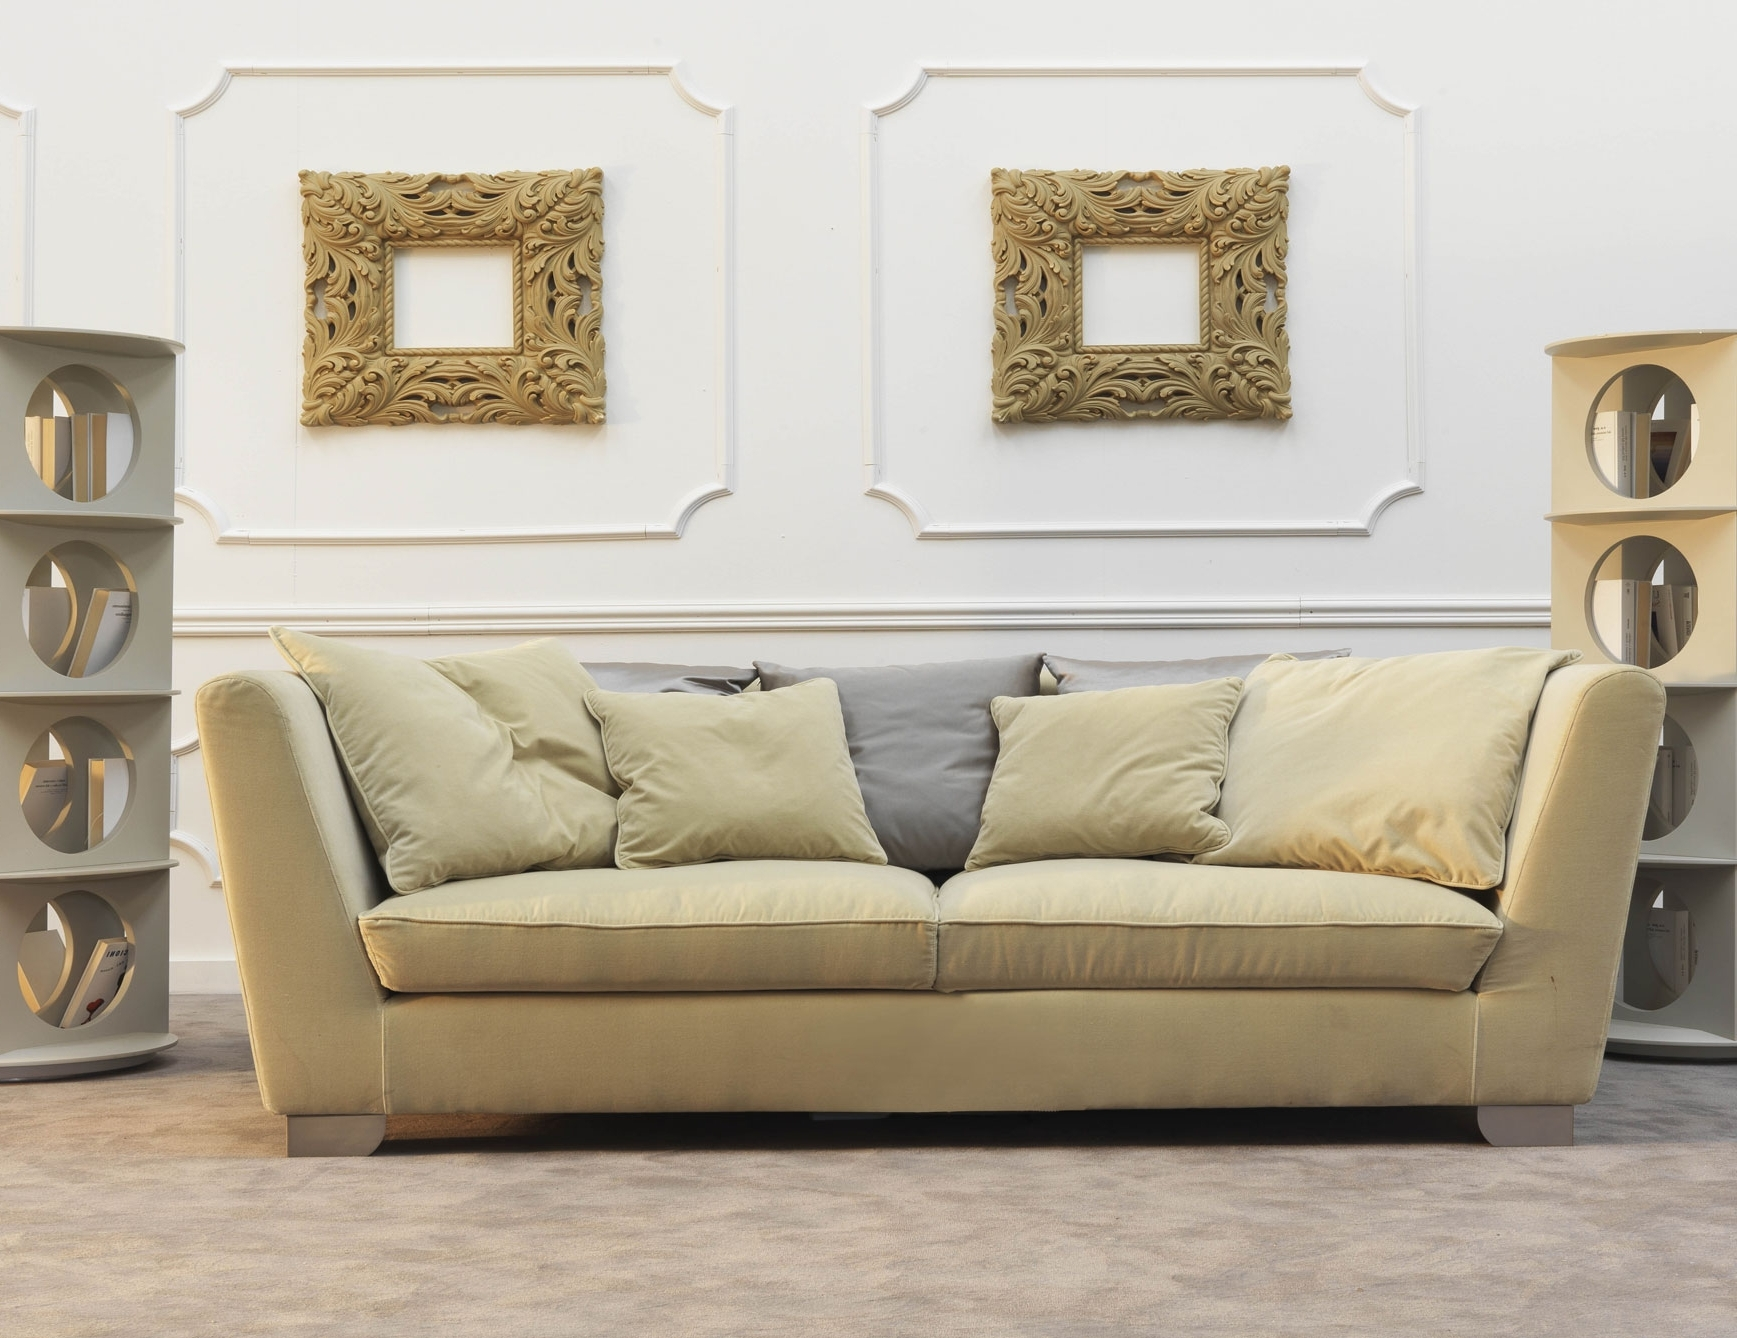 Nella Vetrina Douillet Dou02 Italian Designer Cream Fabric Sofa Regarding Well Liked Sofas And Chairs (View 8 of 15)